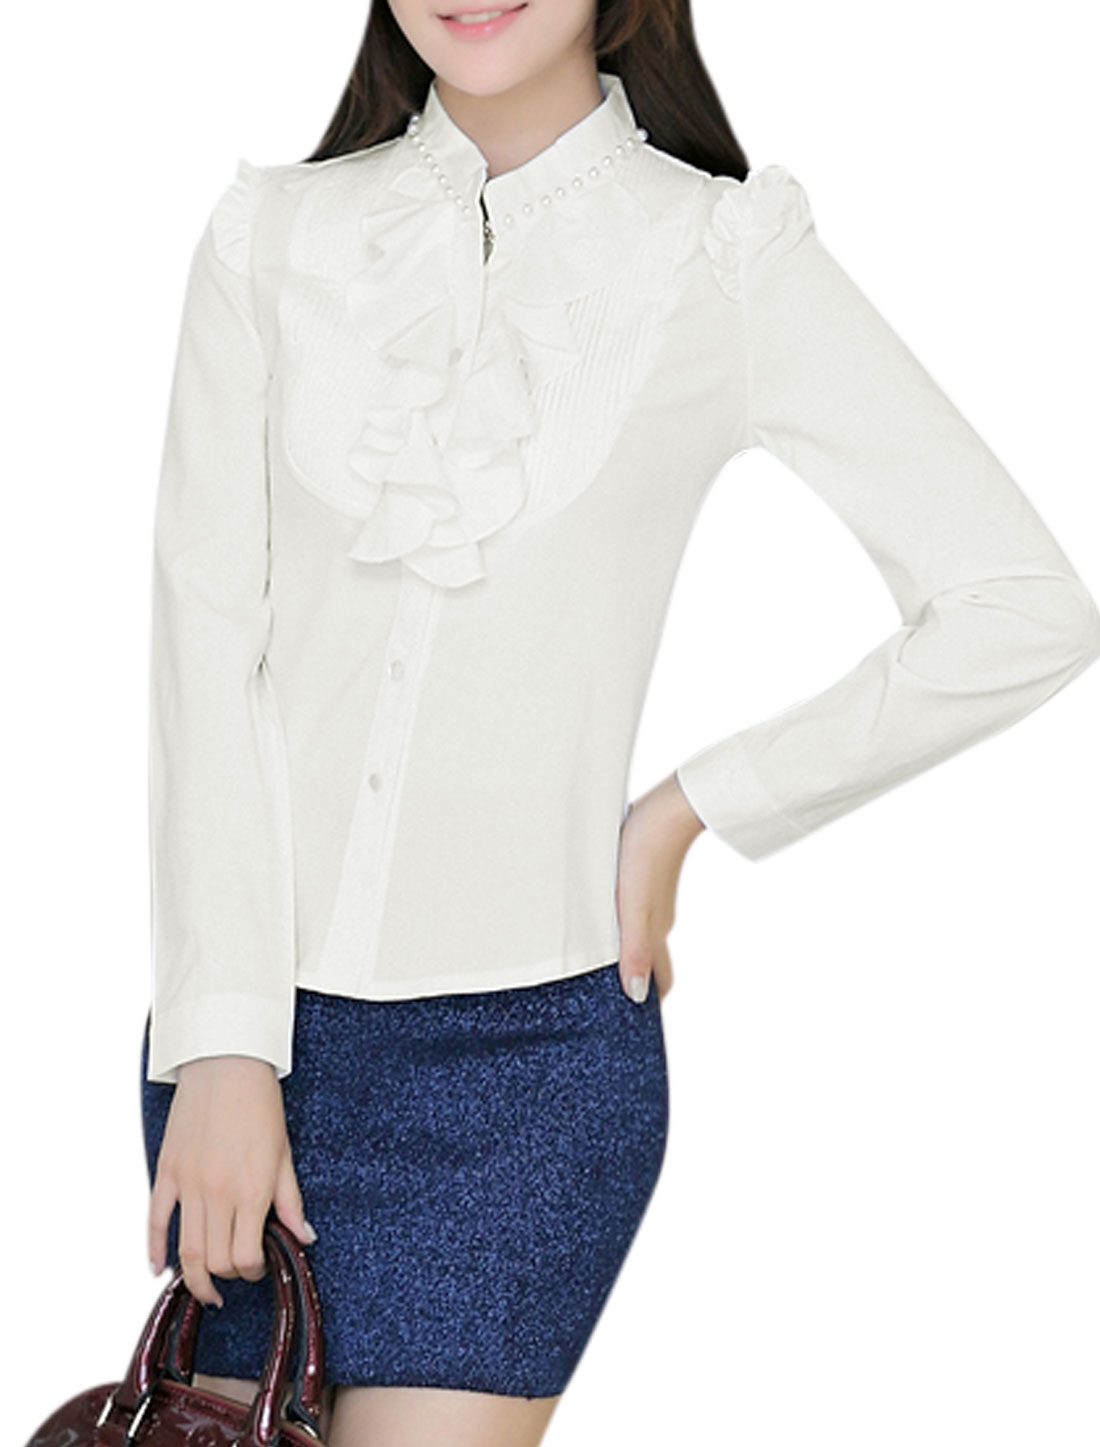 Ladies Pleated Detail Long Sleeves Stylish White Shirt M